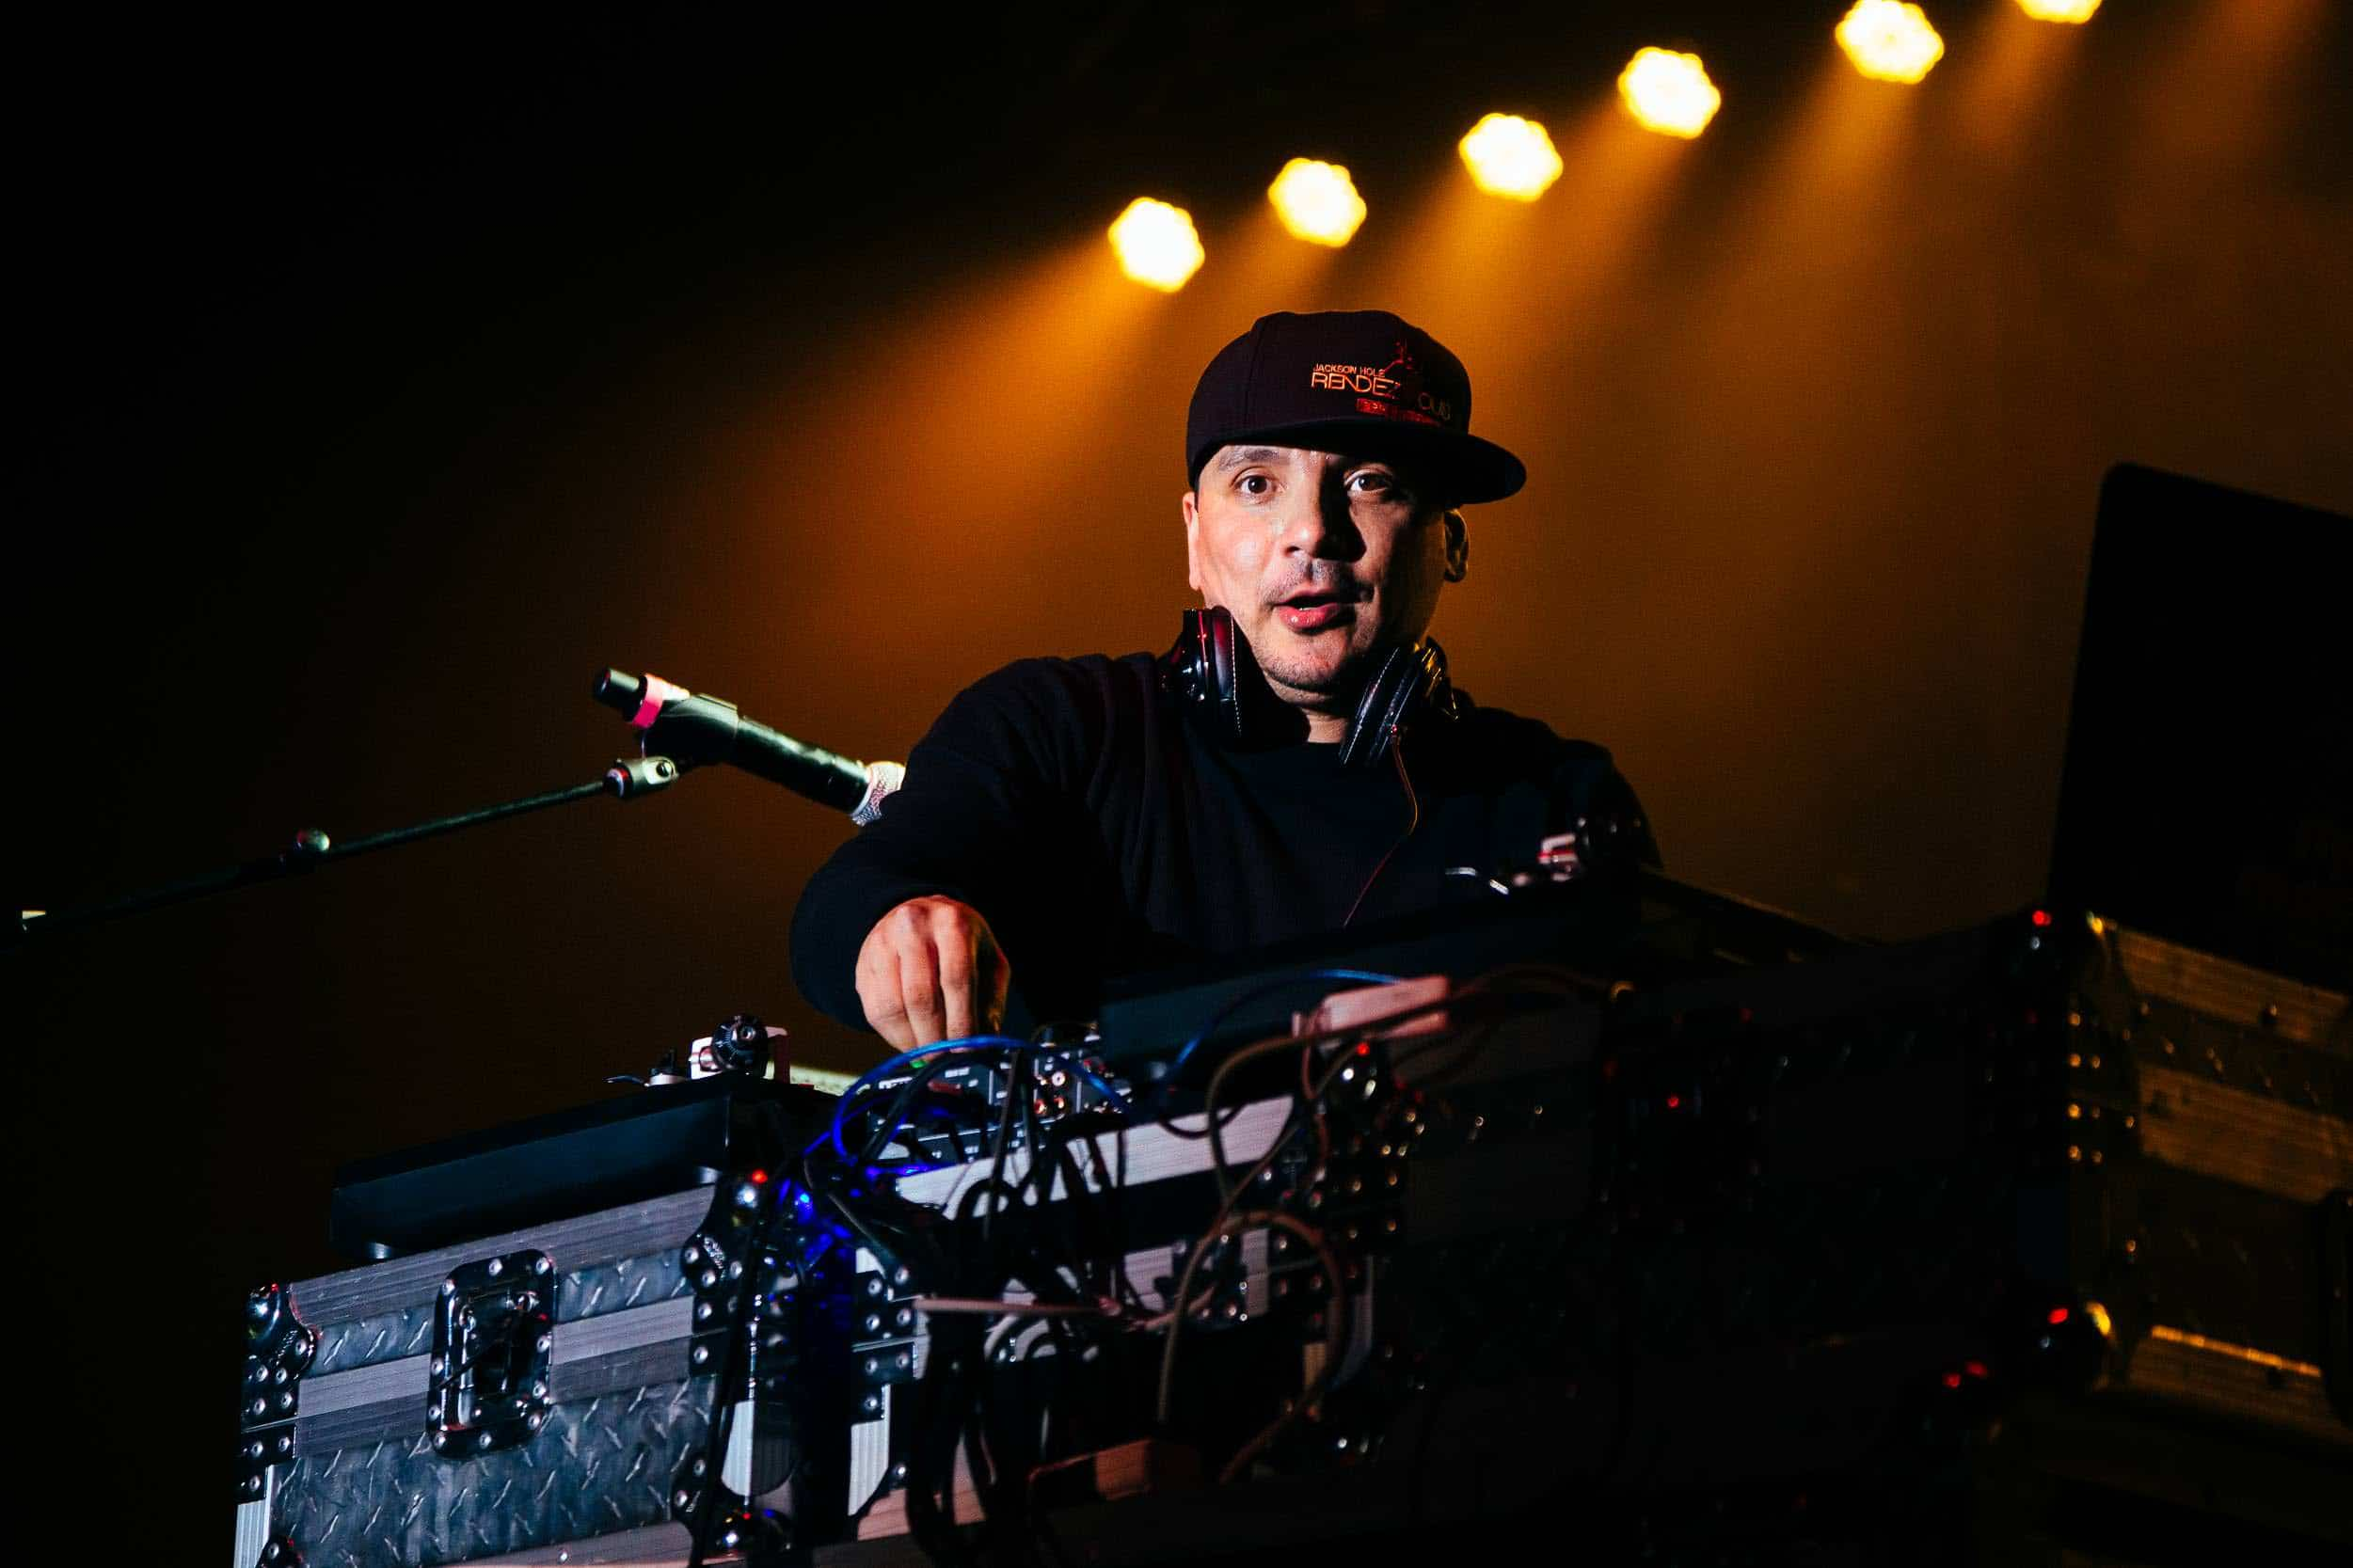 Mix Master Mike of the Beastie Boys performs to a packed crowd